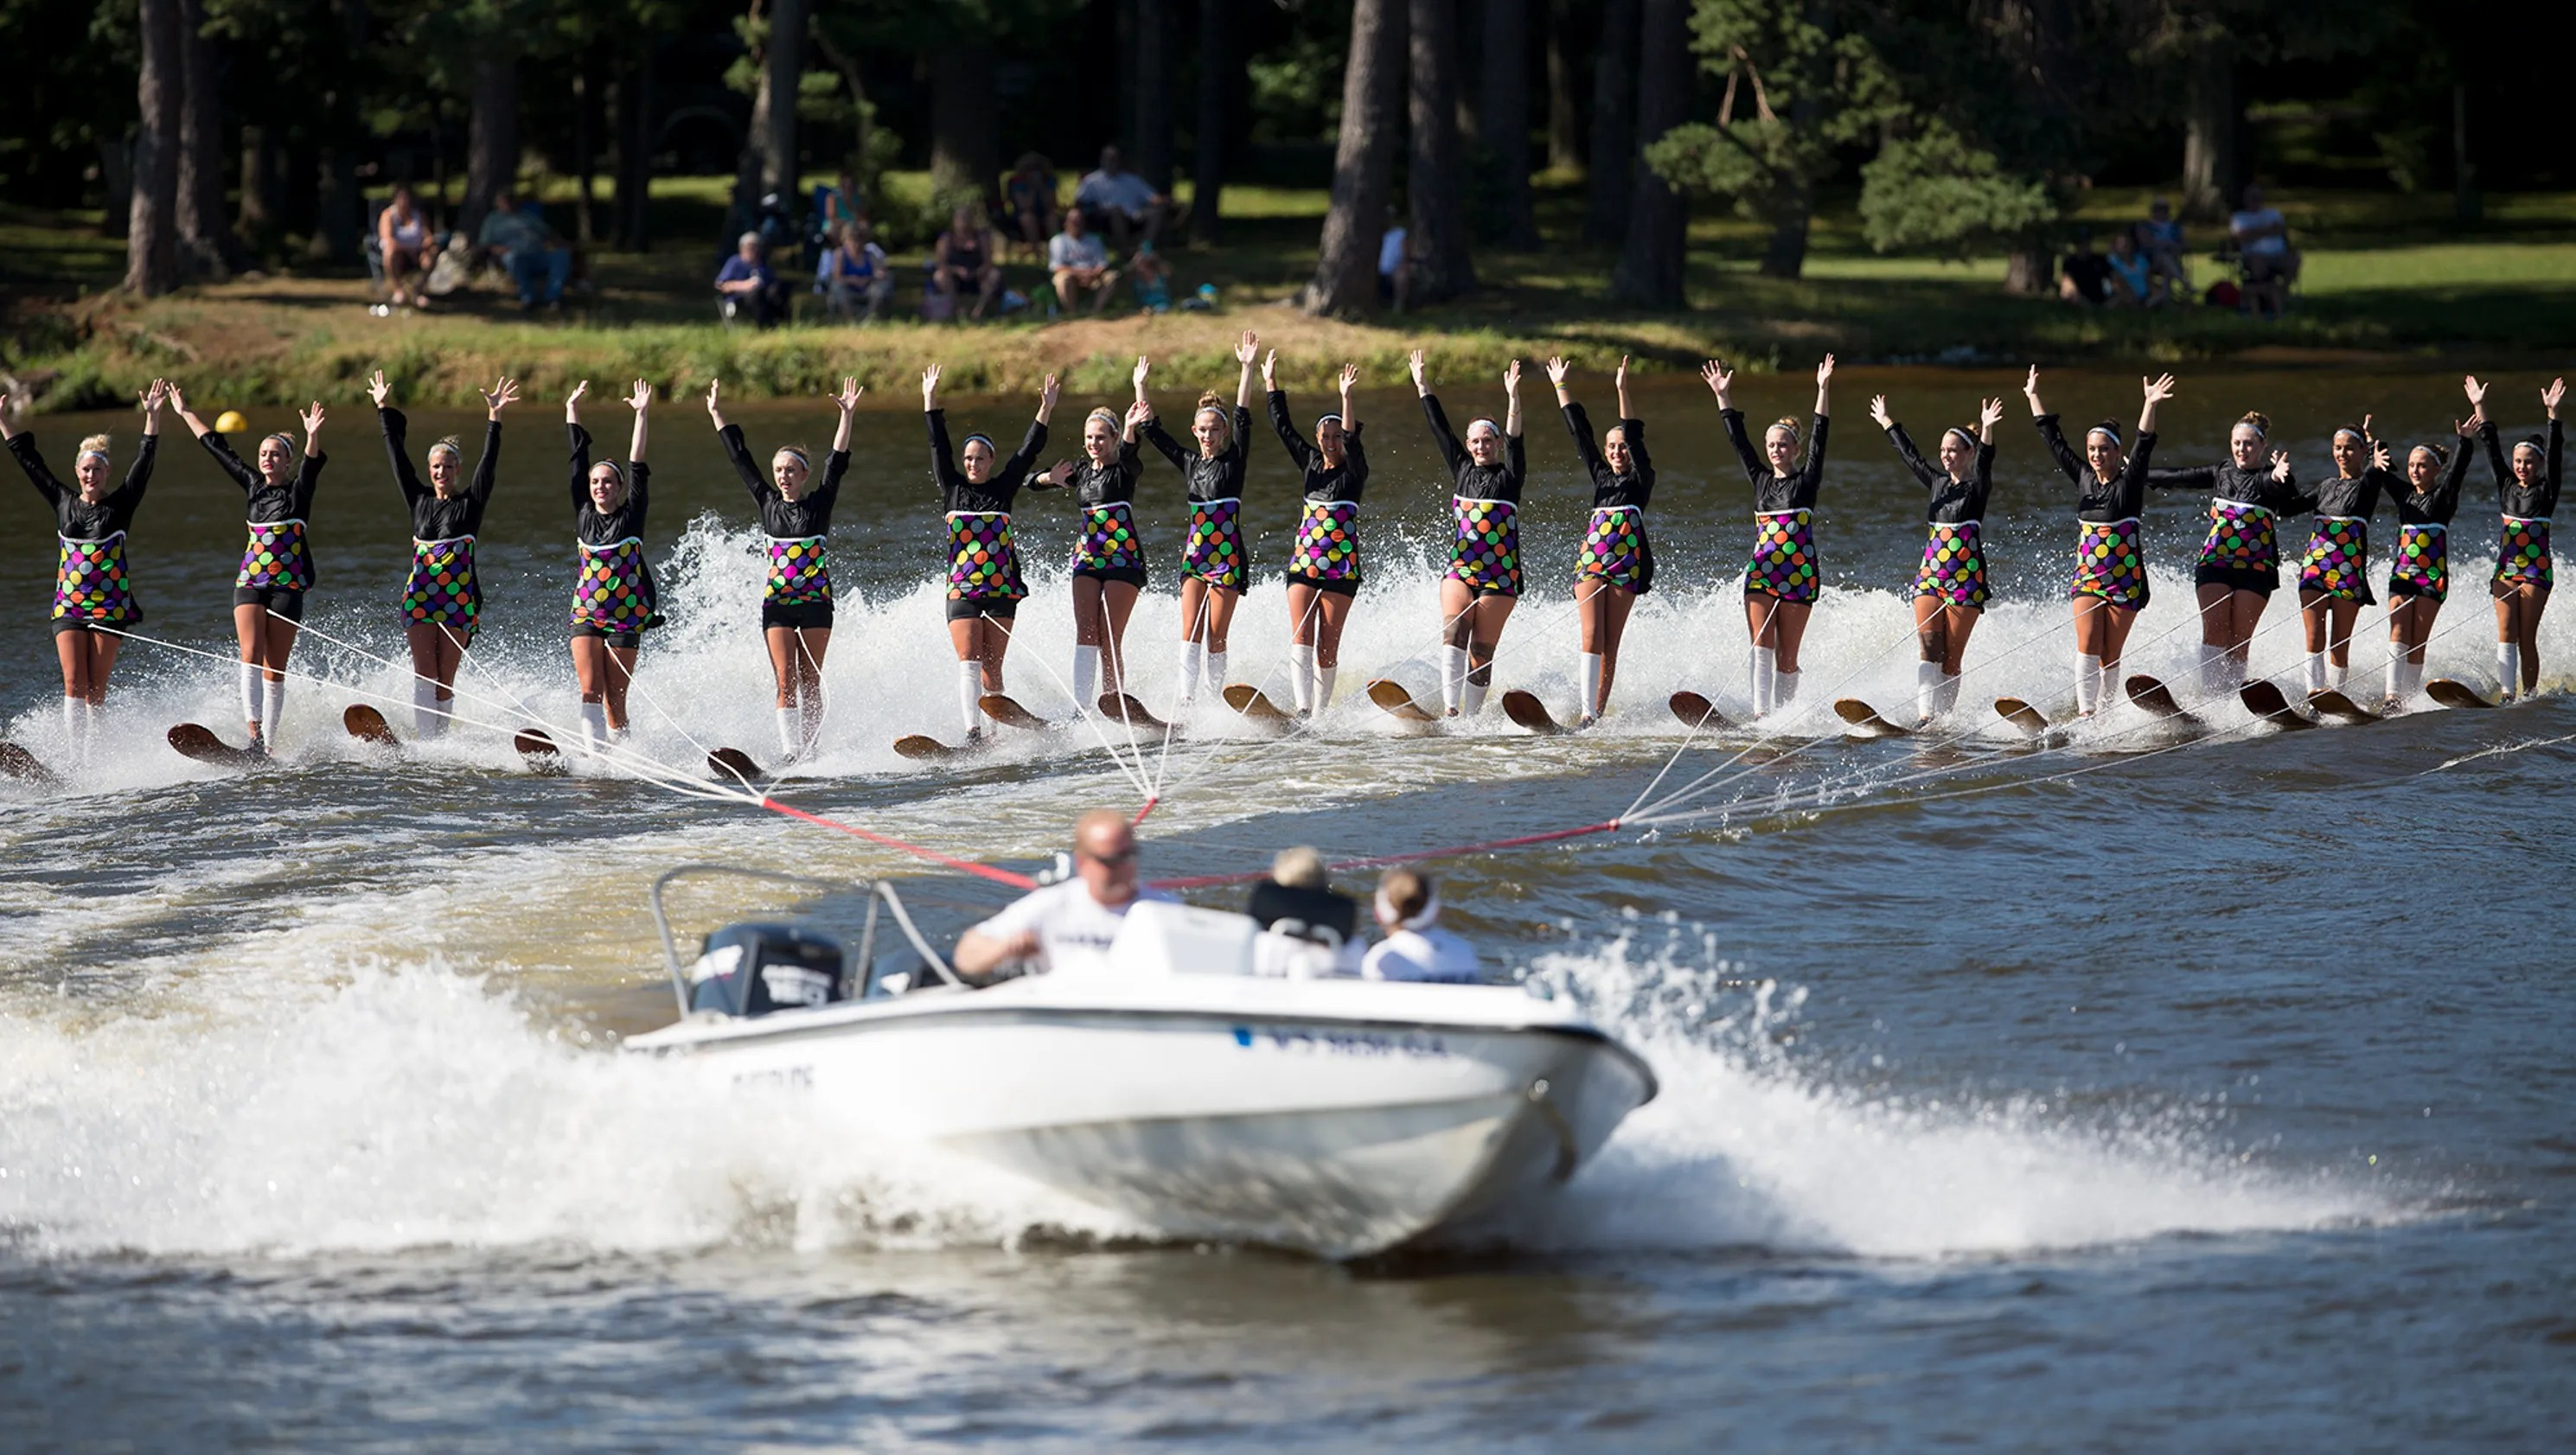 Aqua Skiers perform at Wisconsin State Water Ski Show